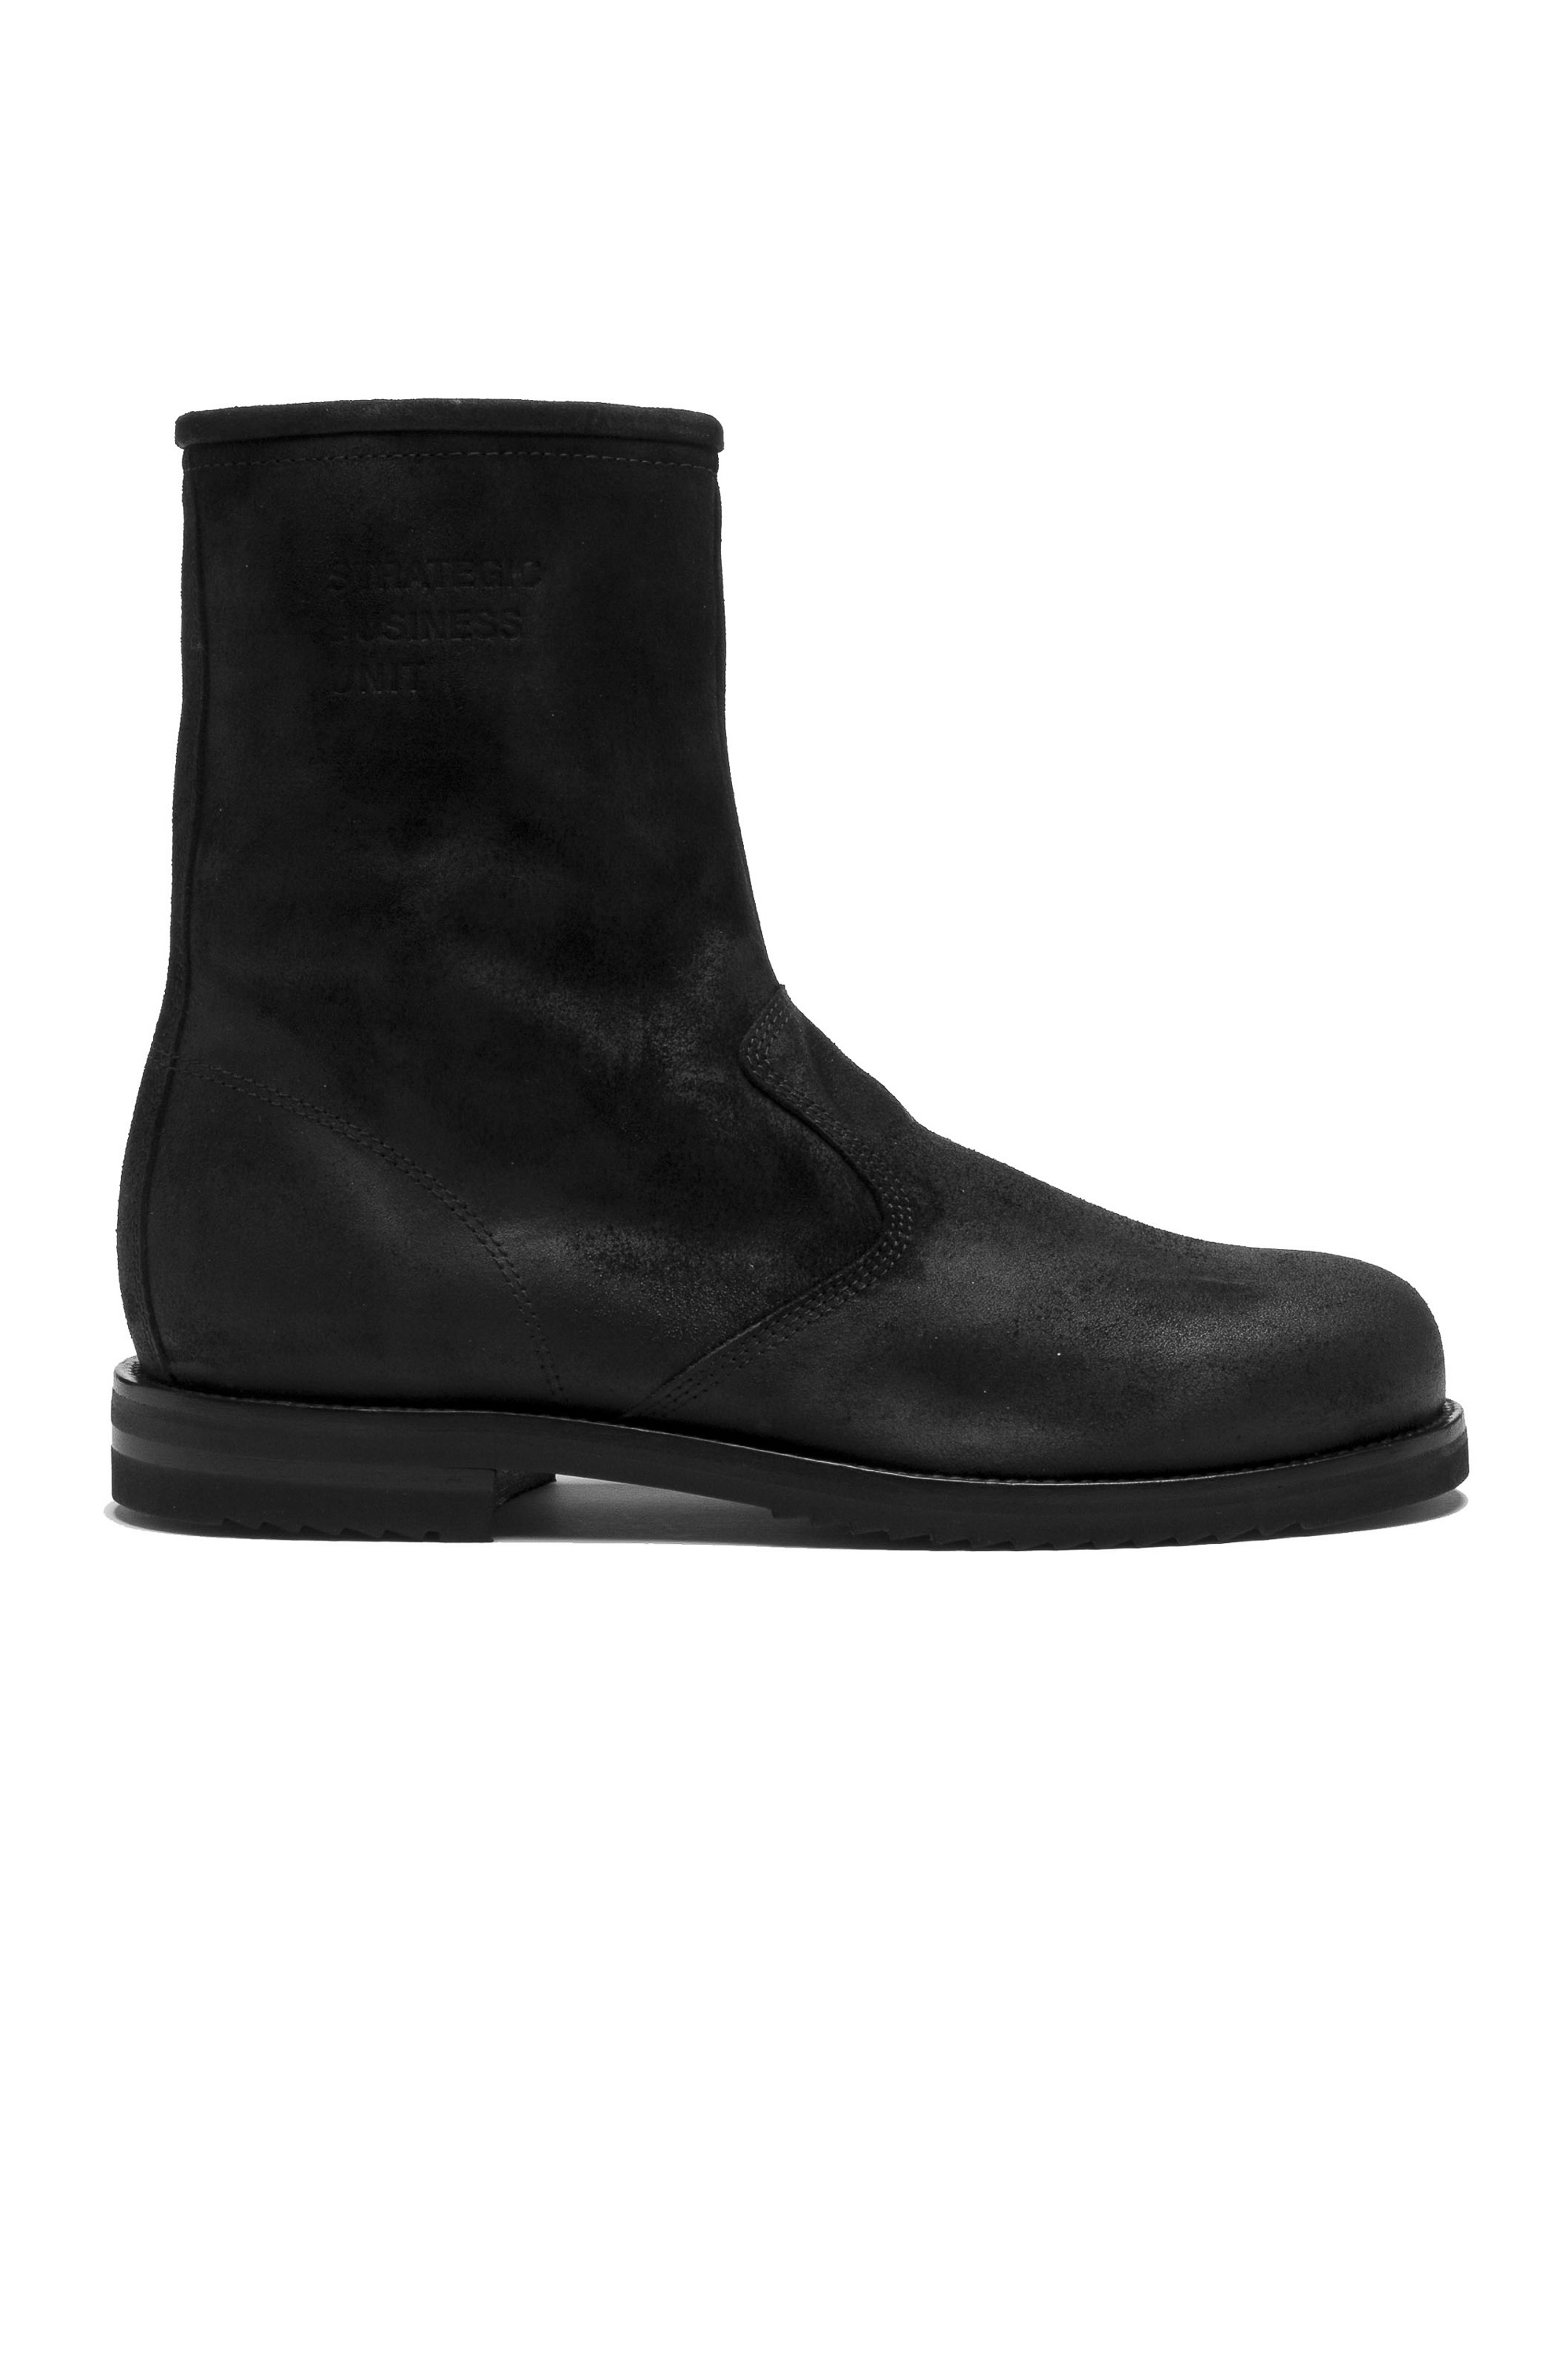 SBU 01529_19AW Classic motorcycle boots in black oiled leather 01